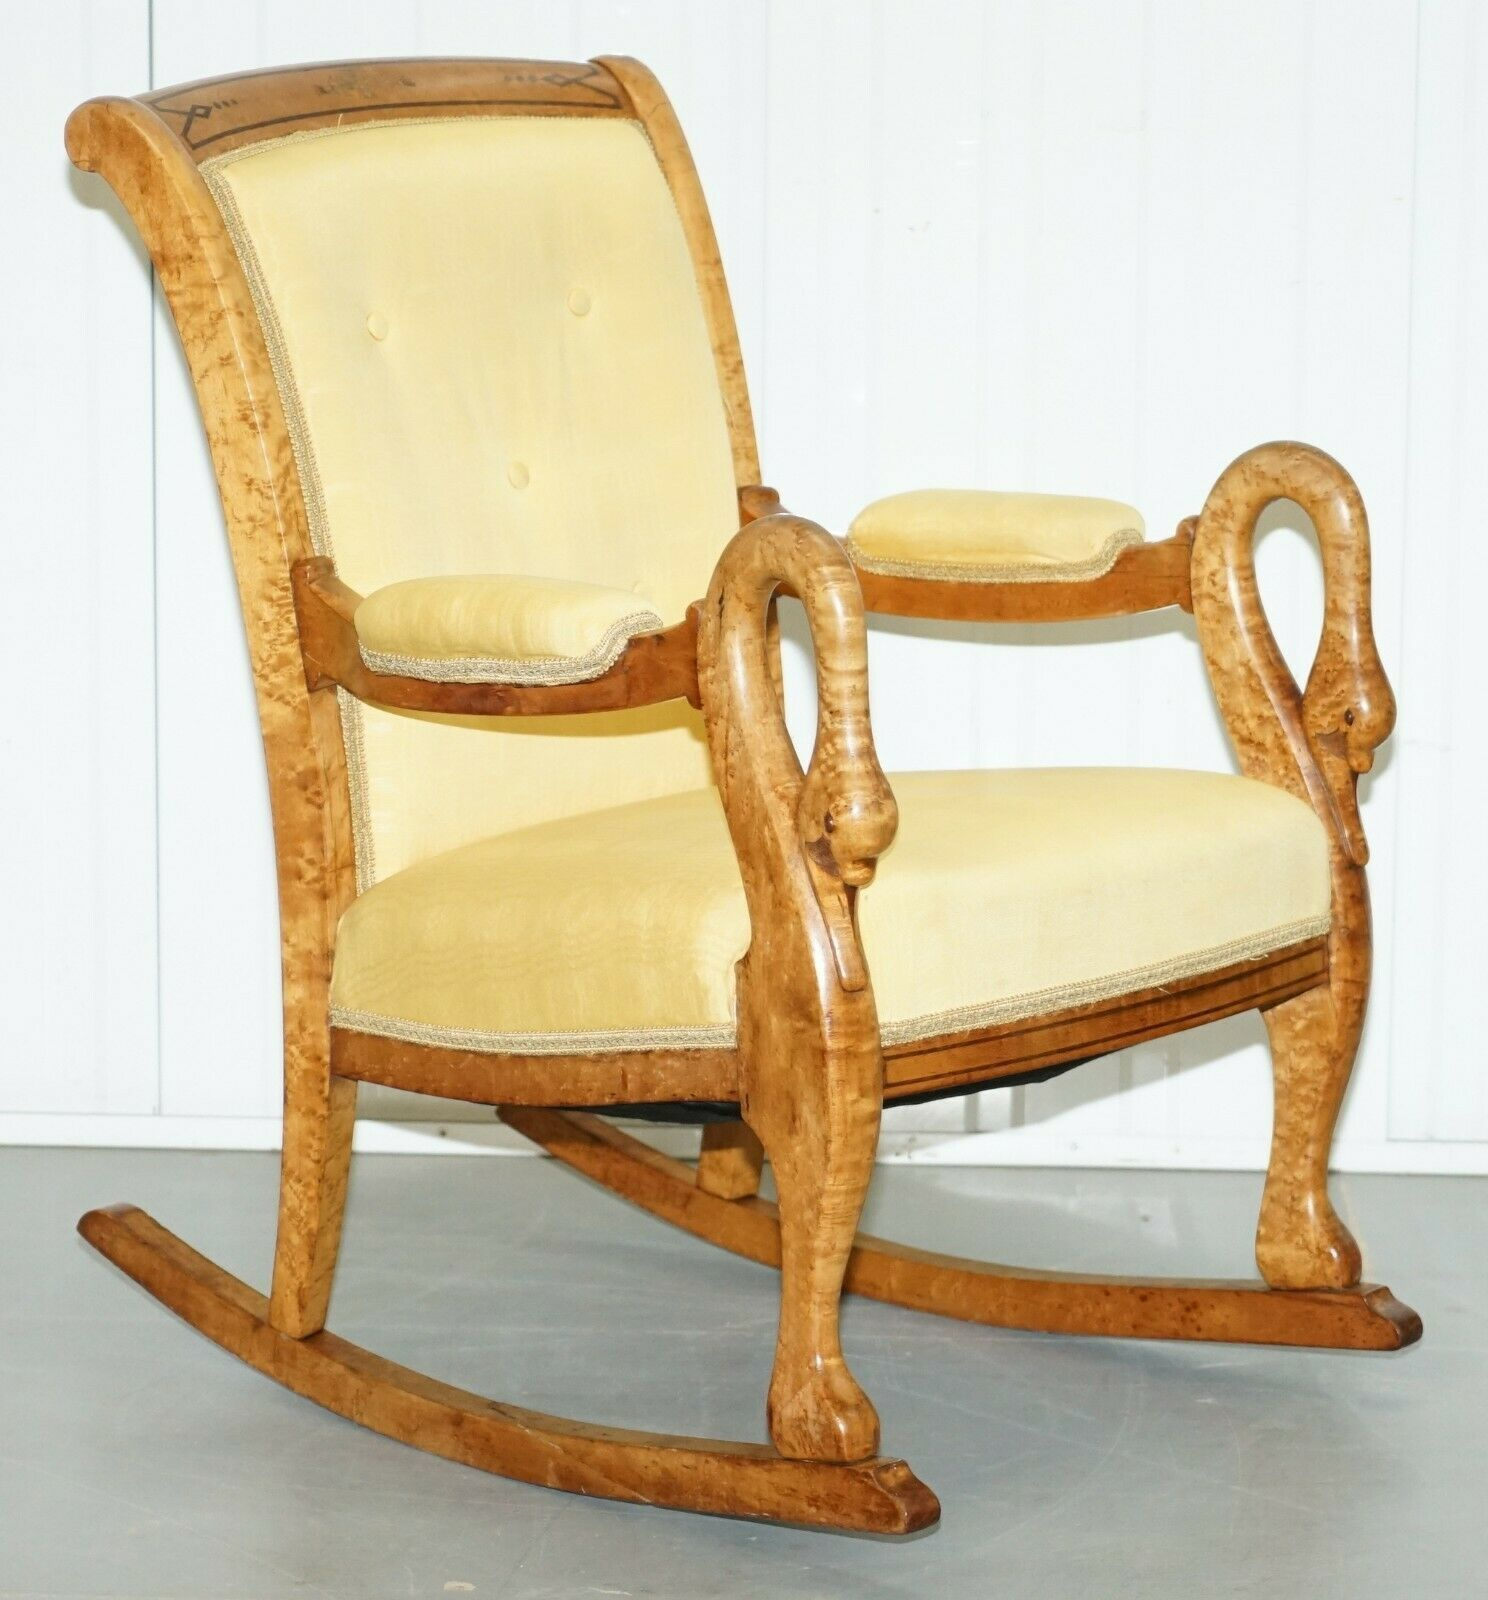 Astonishing Rare Circa 1825 Burr Maple Rocking Armchair With Hand Carved Swan Detailed Arms Pdpeps Interior Chair Design Pdpepsorg